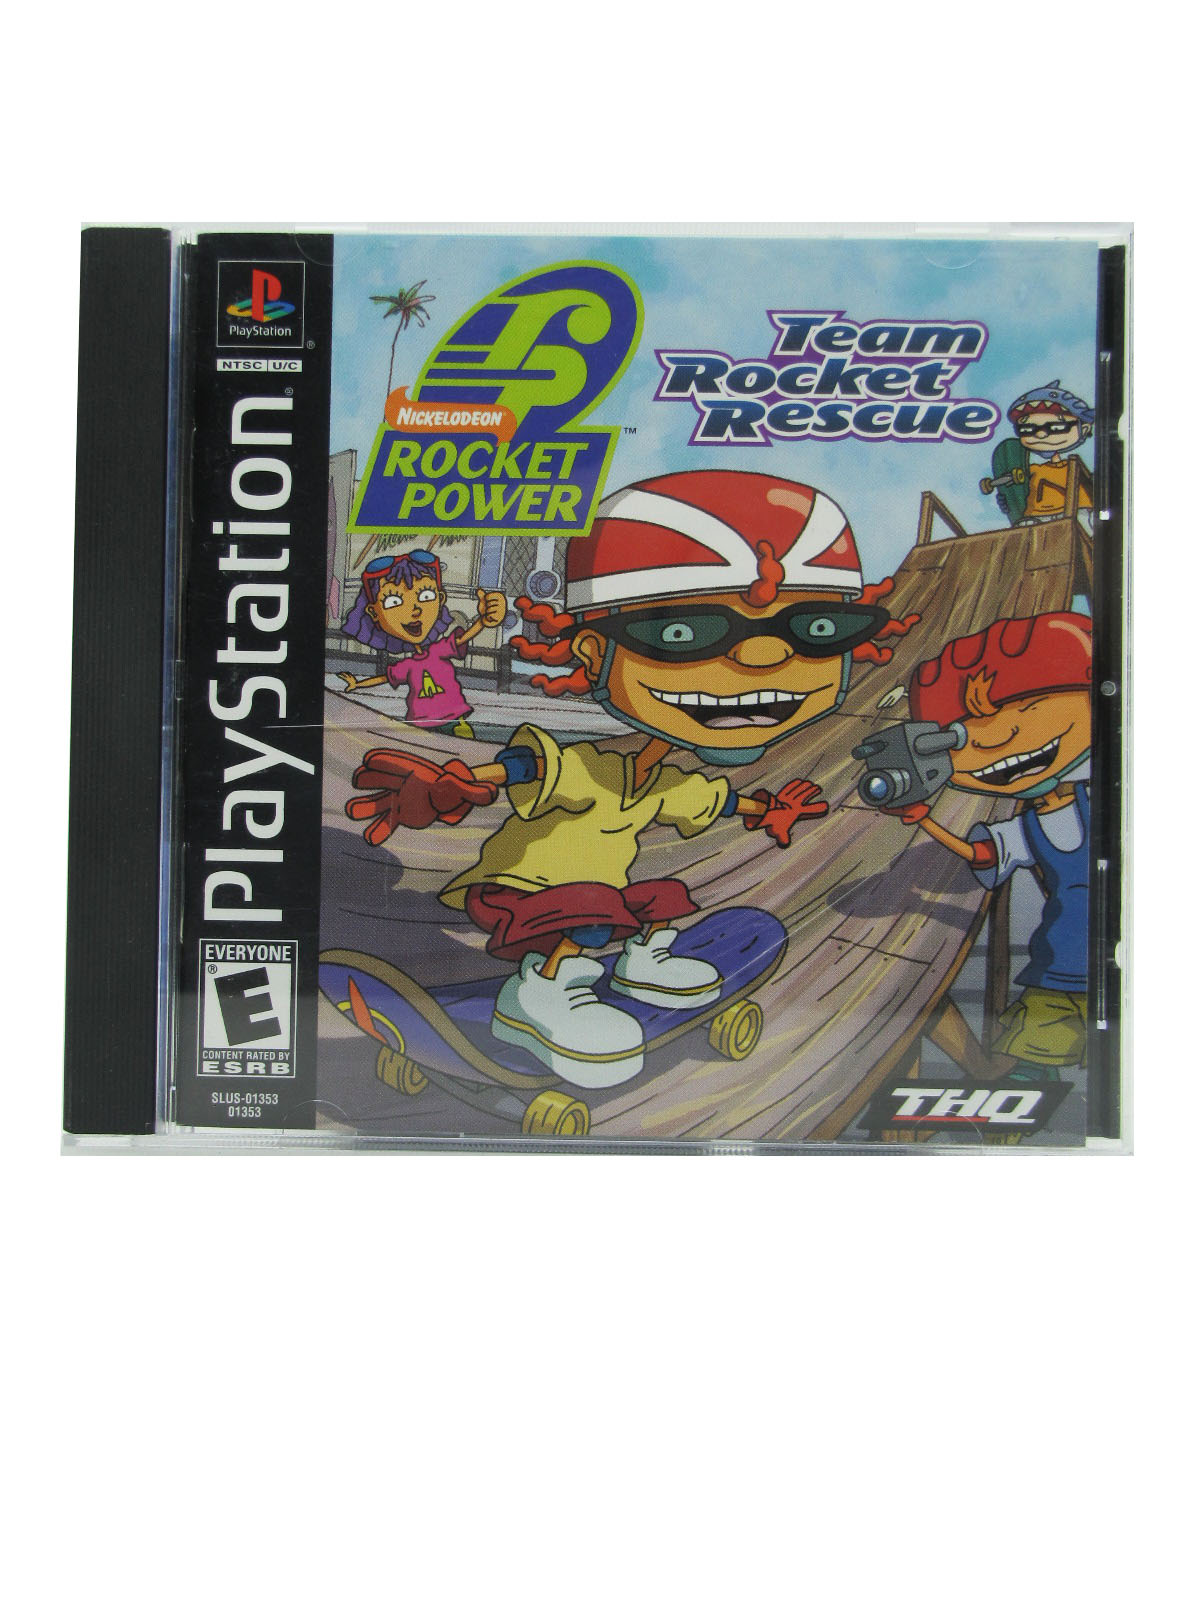 PS1 Rocket Power: Team Rocket Rescue Complete - 2001